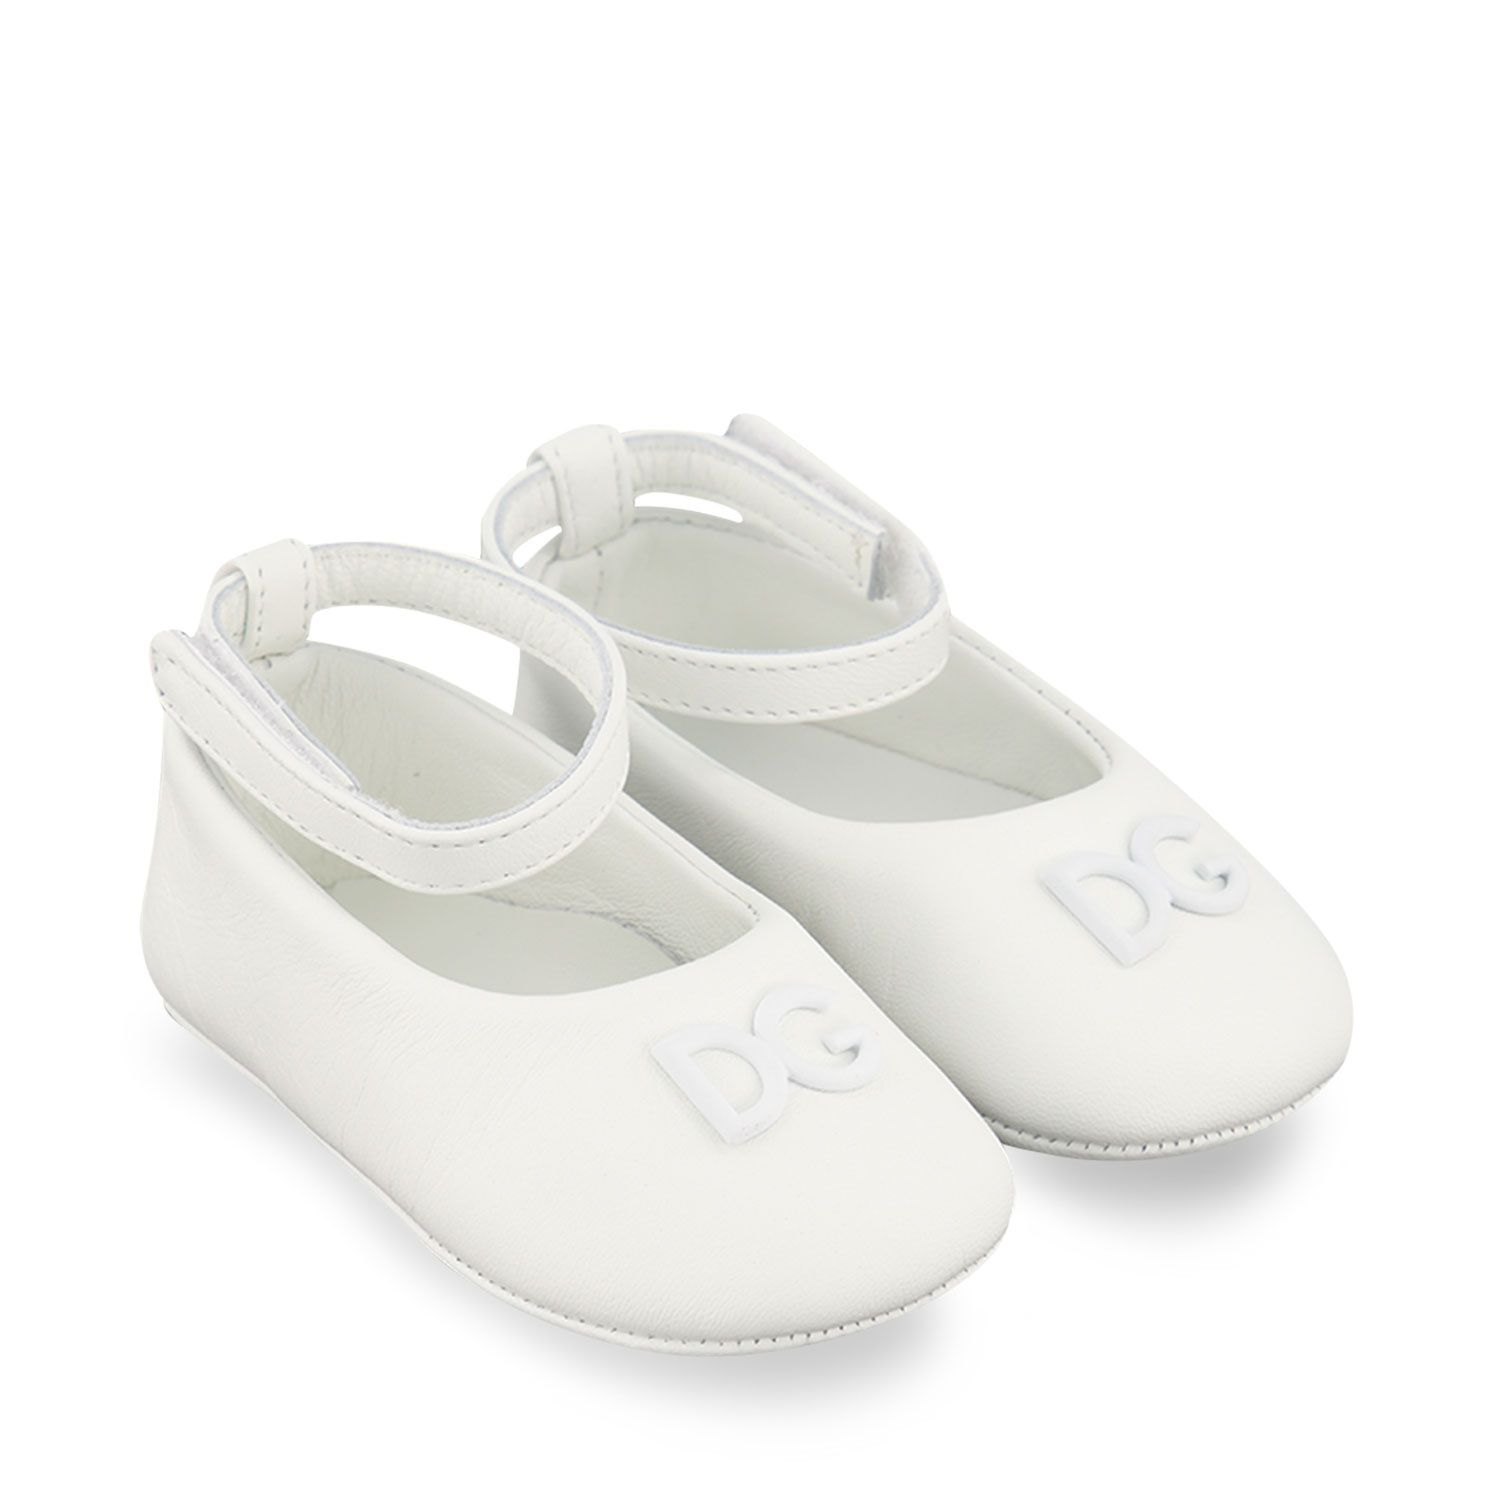 Picture of Dolce & Gabbana DK0065 baby shoes white